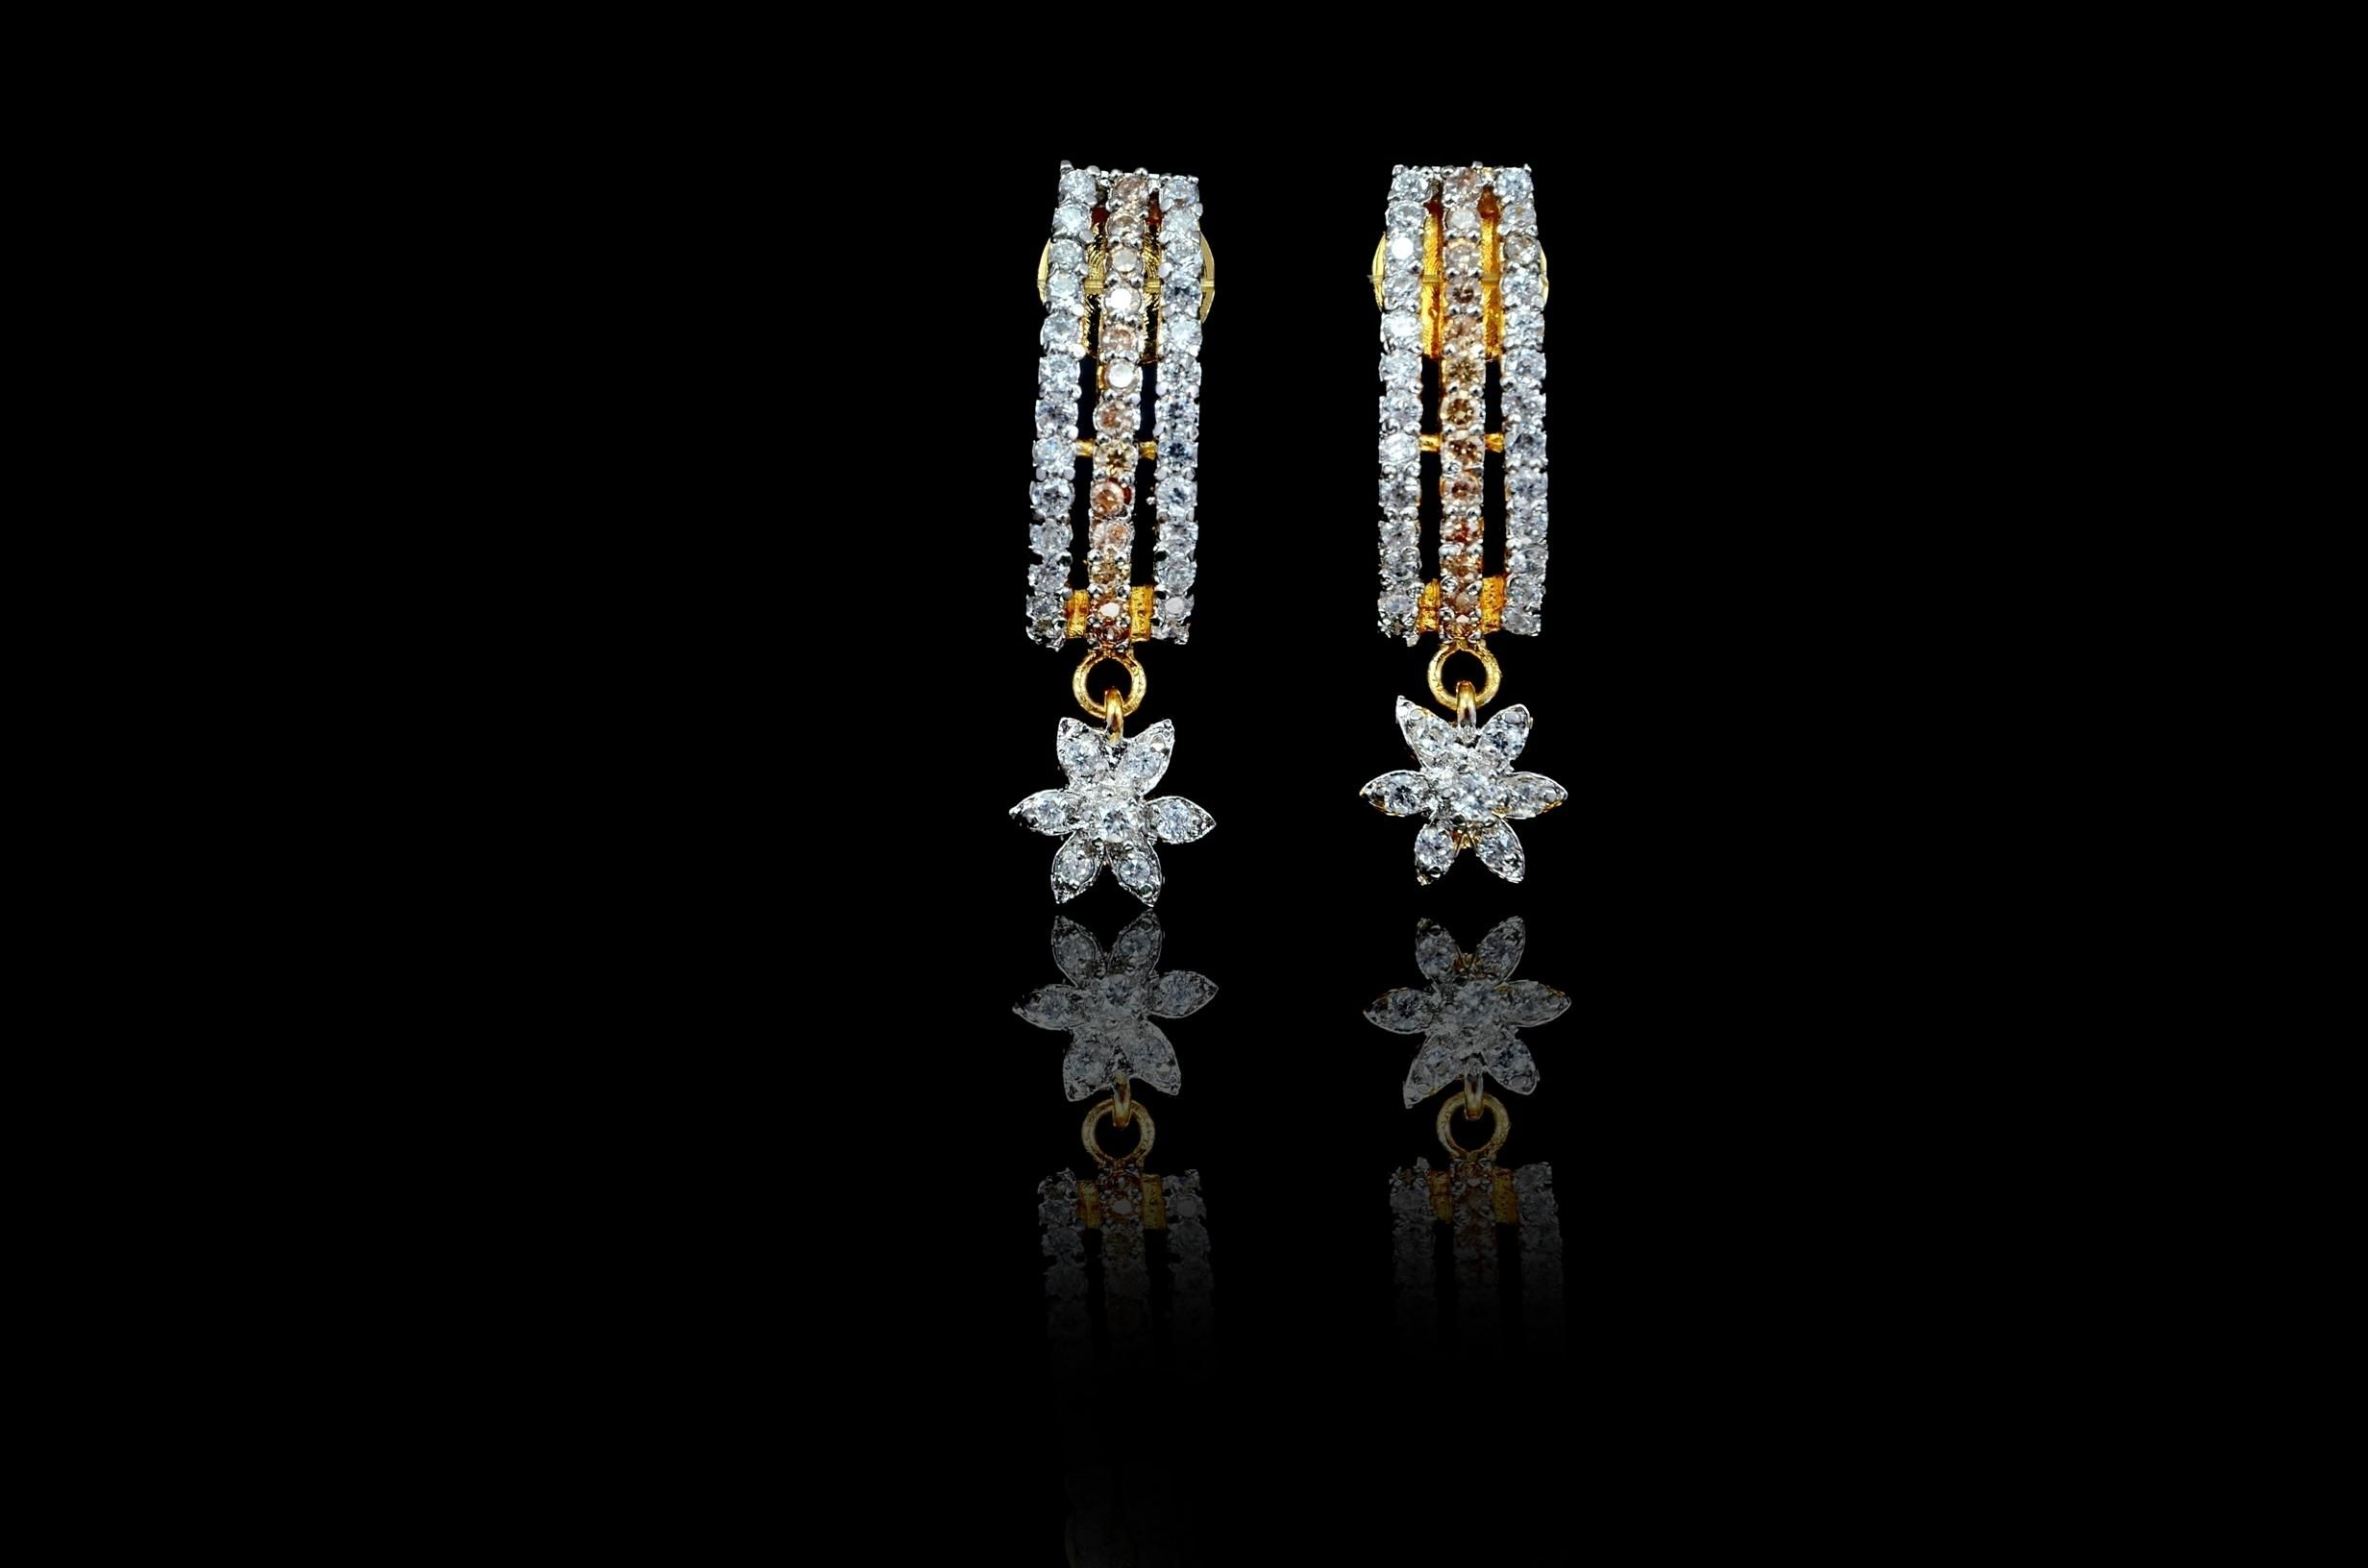 diamond jewelery designer american in kundan view gold india l jewelry d indian larger a earrings and islamic chandelier